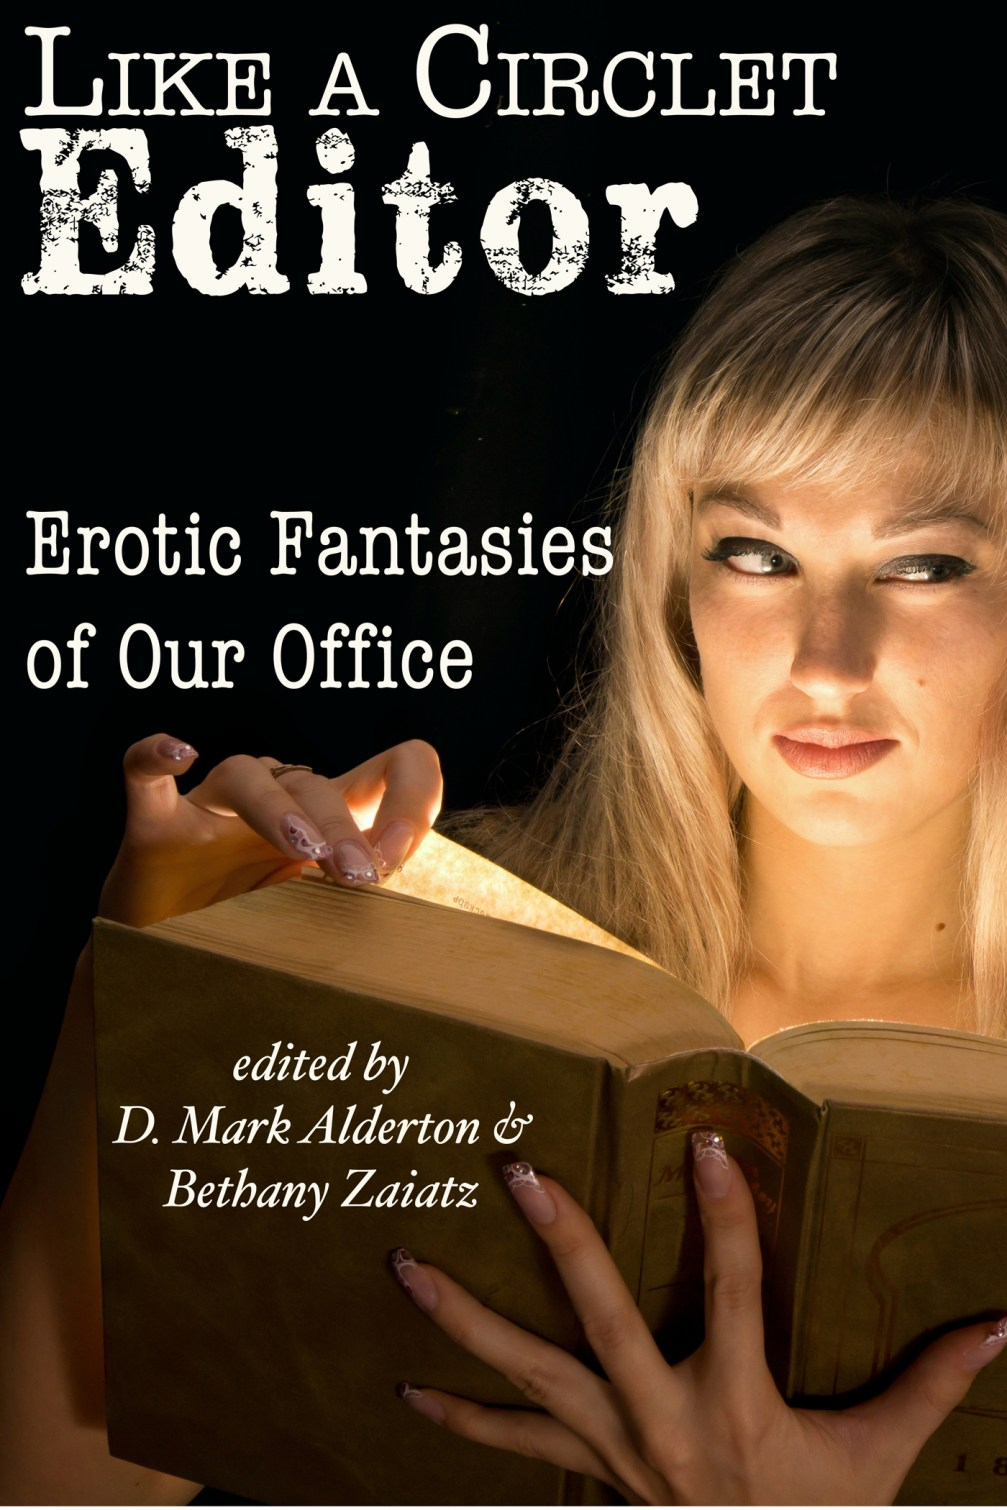 Like a Circlet Editor: Erotic Fantasies of Our Office